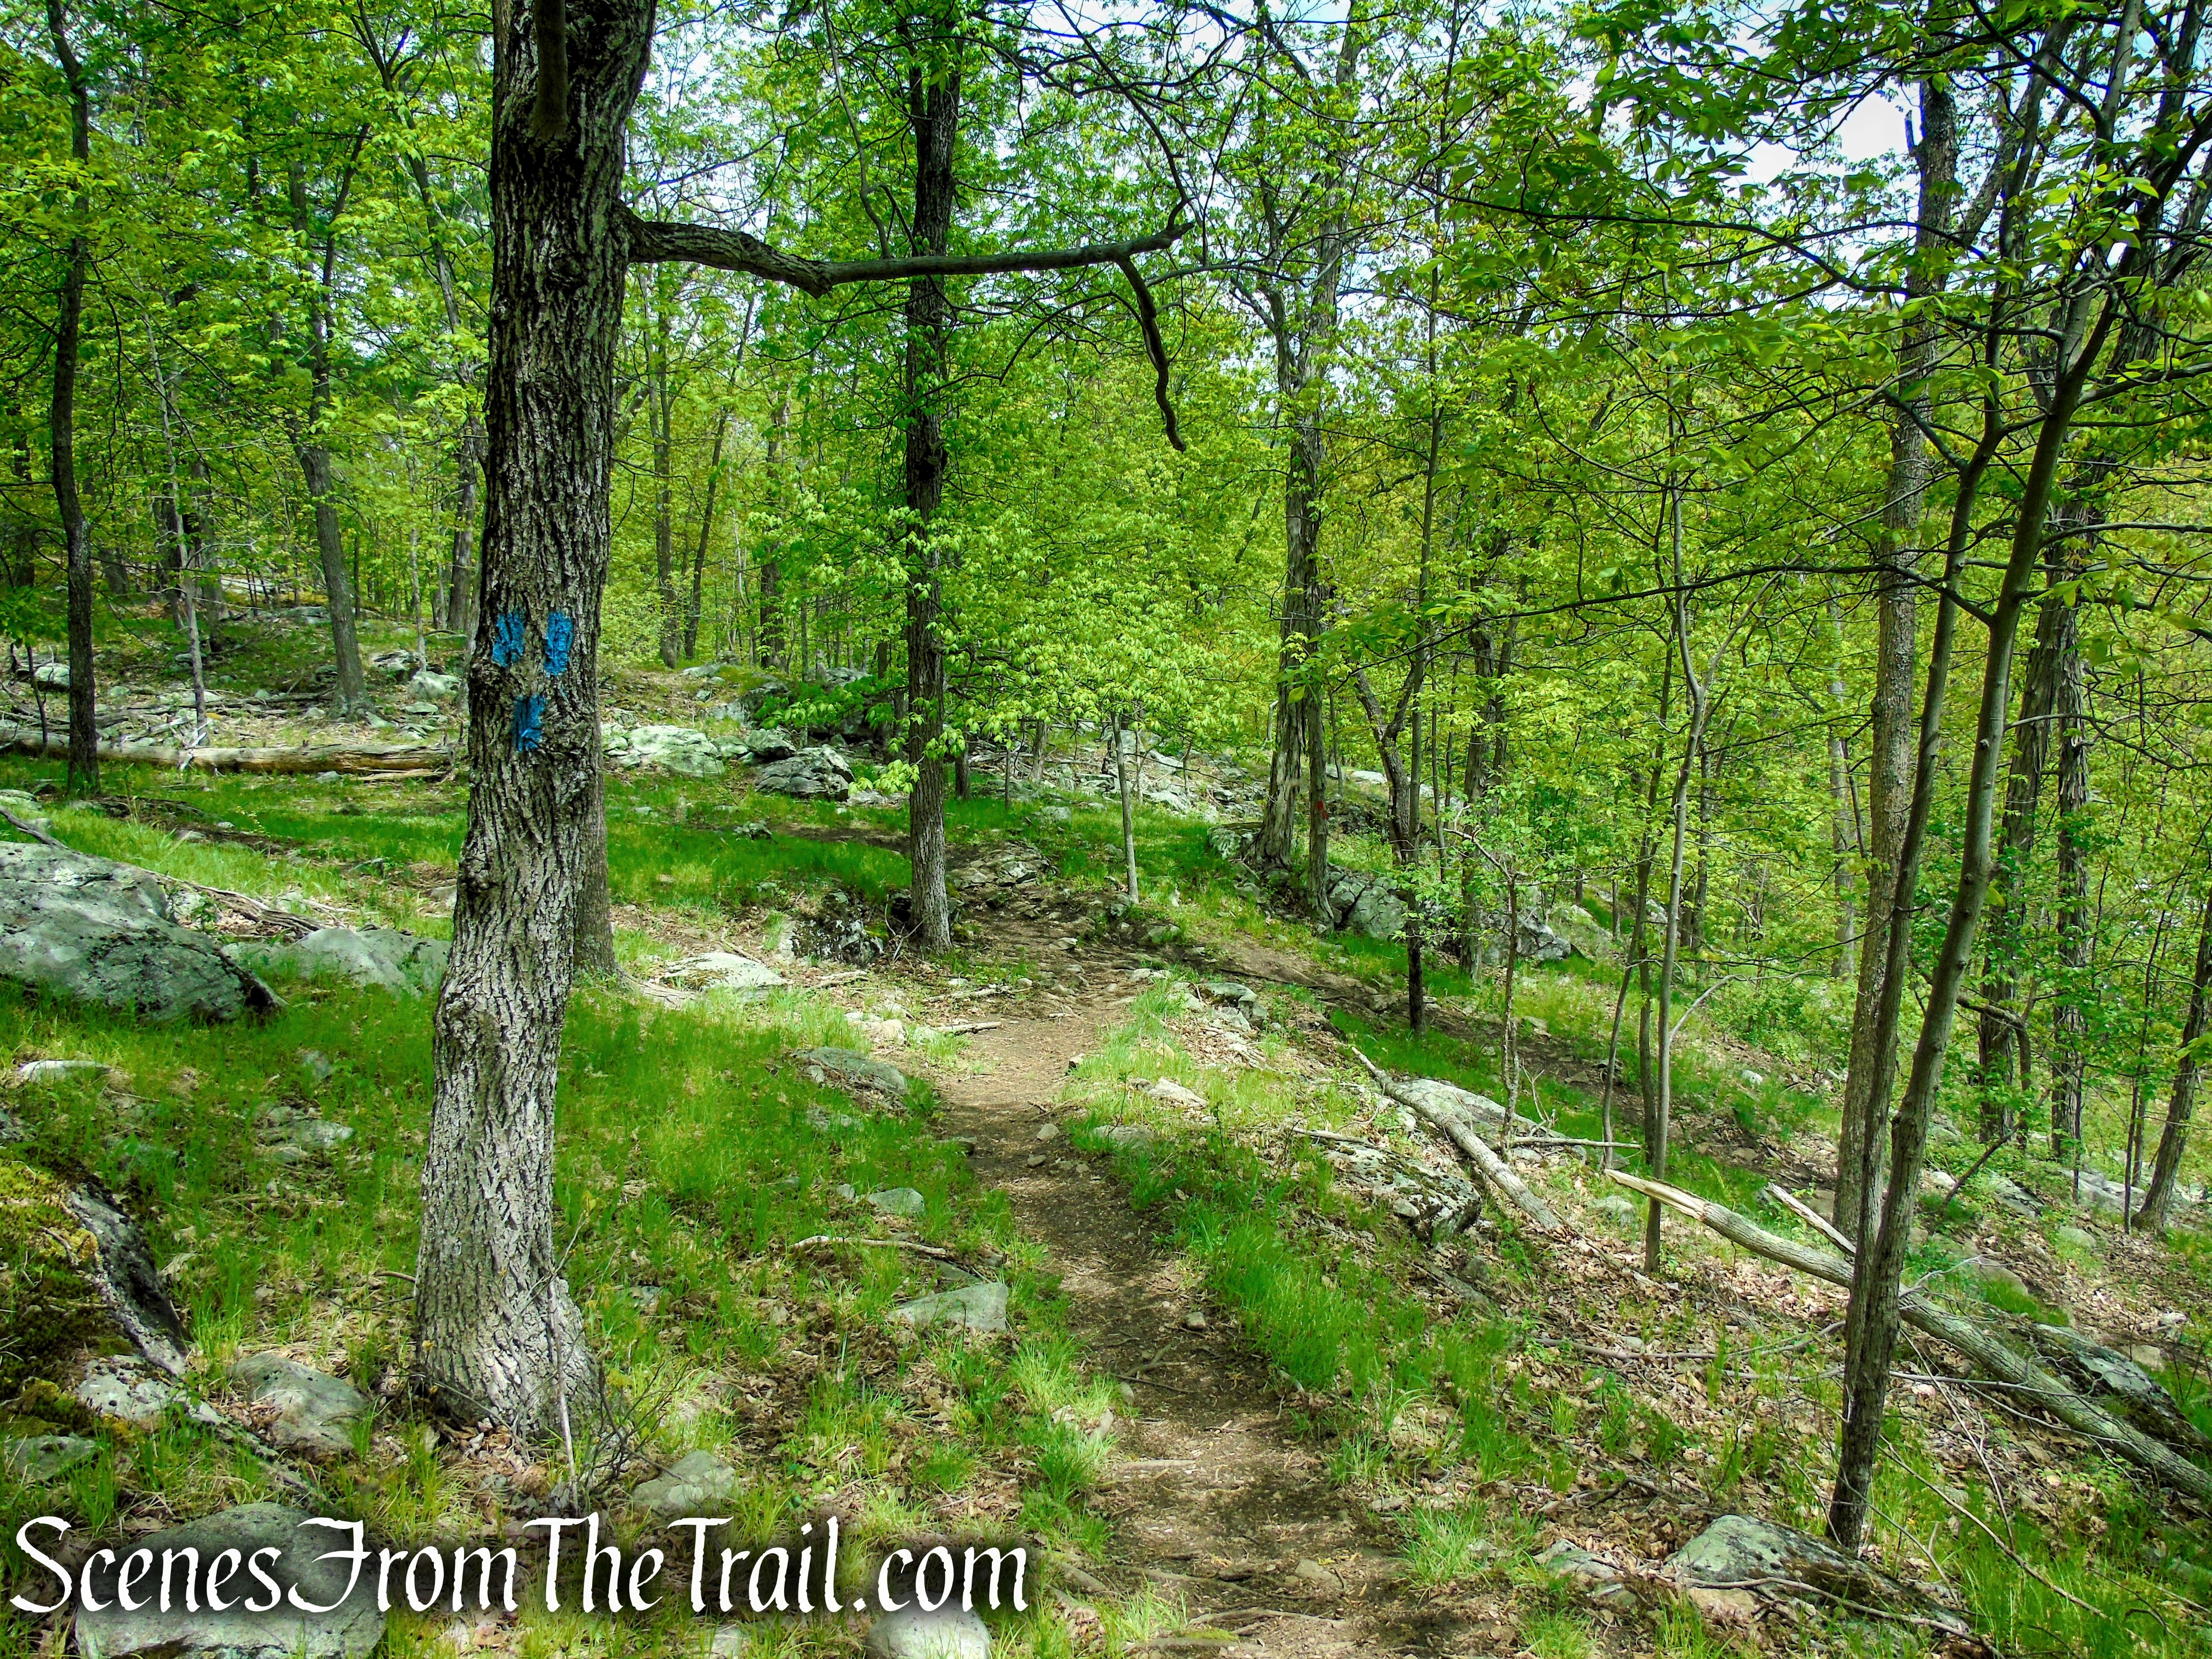 Terminus of Blue Trail - Dater Mountain Nature Park